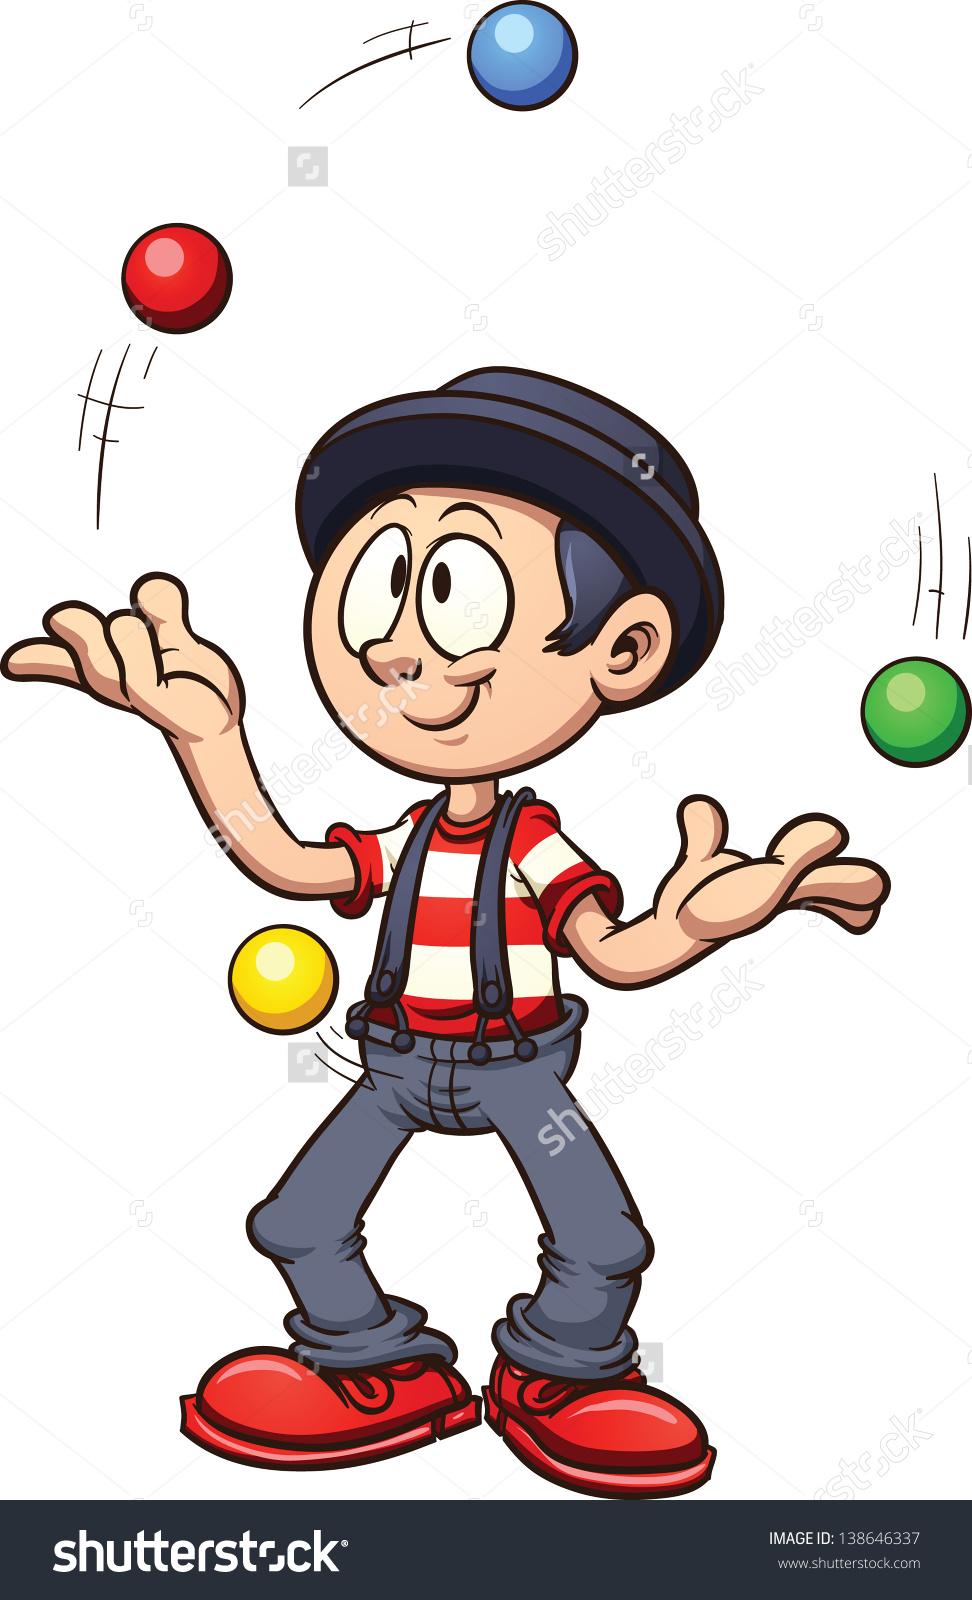 juggling clipart clipground shield clipart for kids shield clipart outline